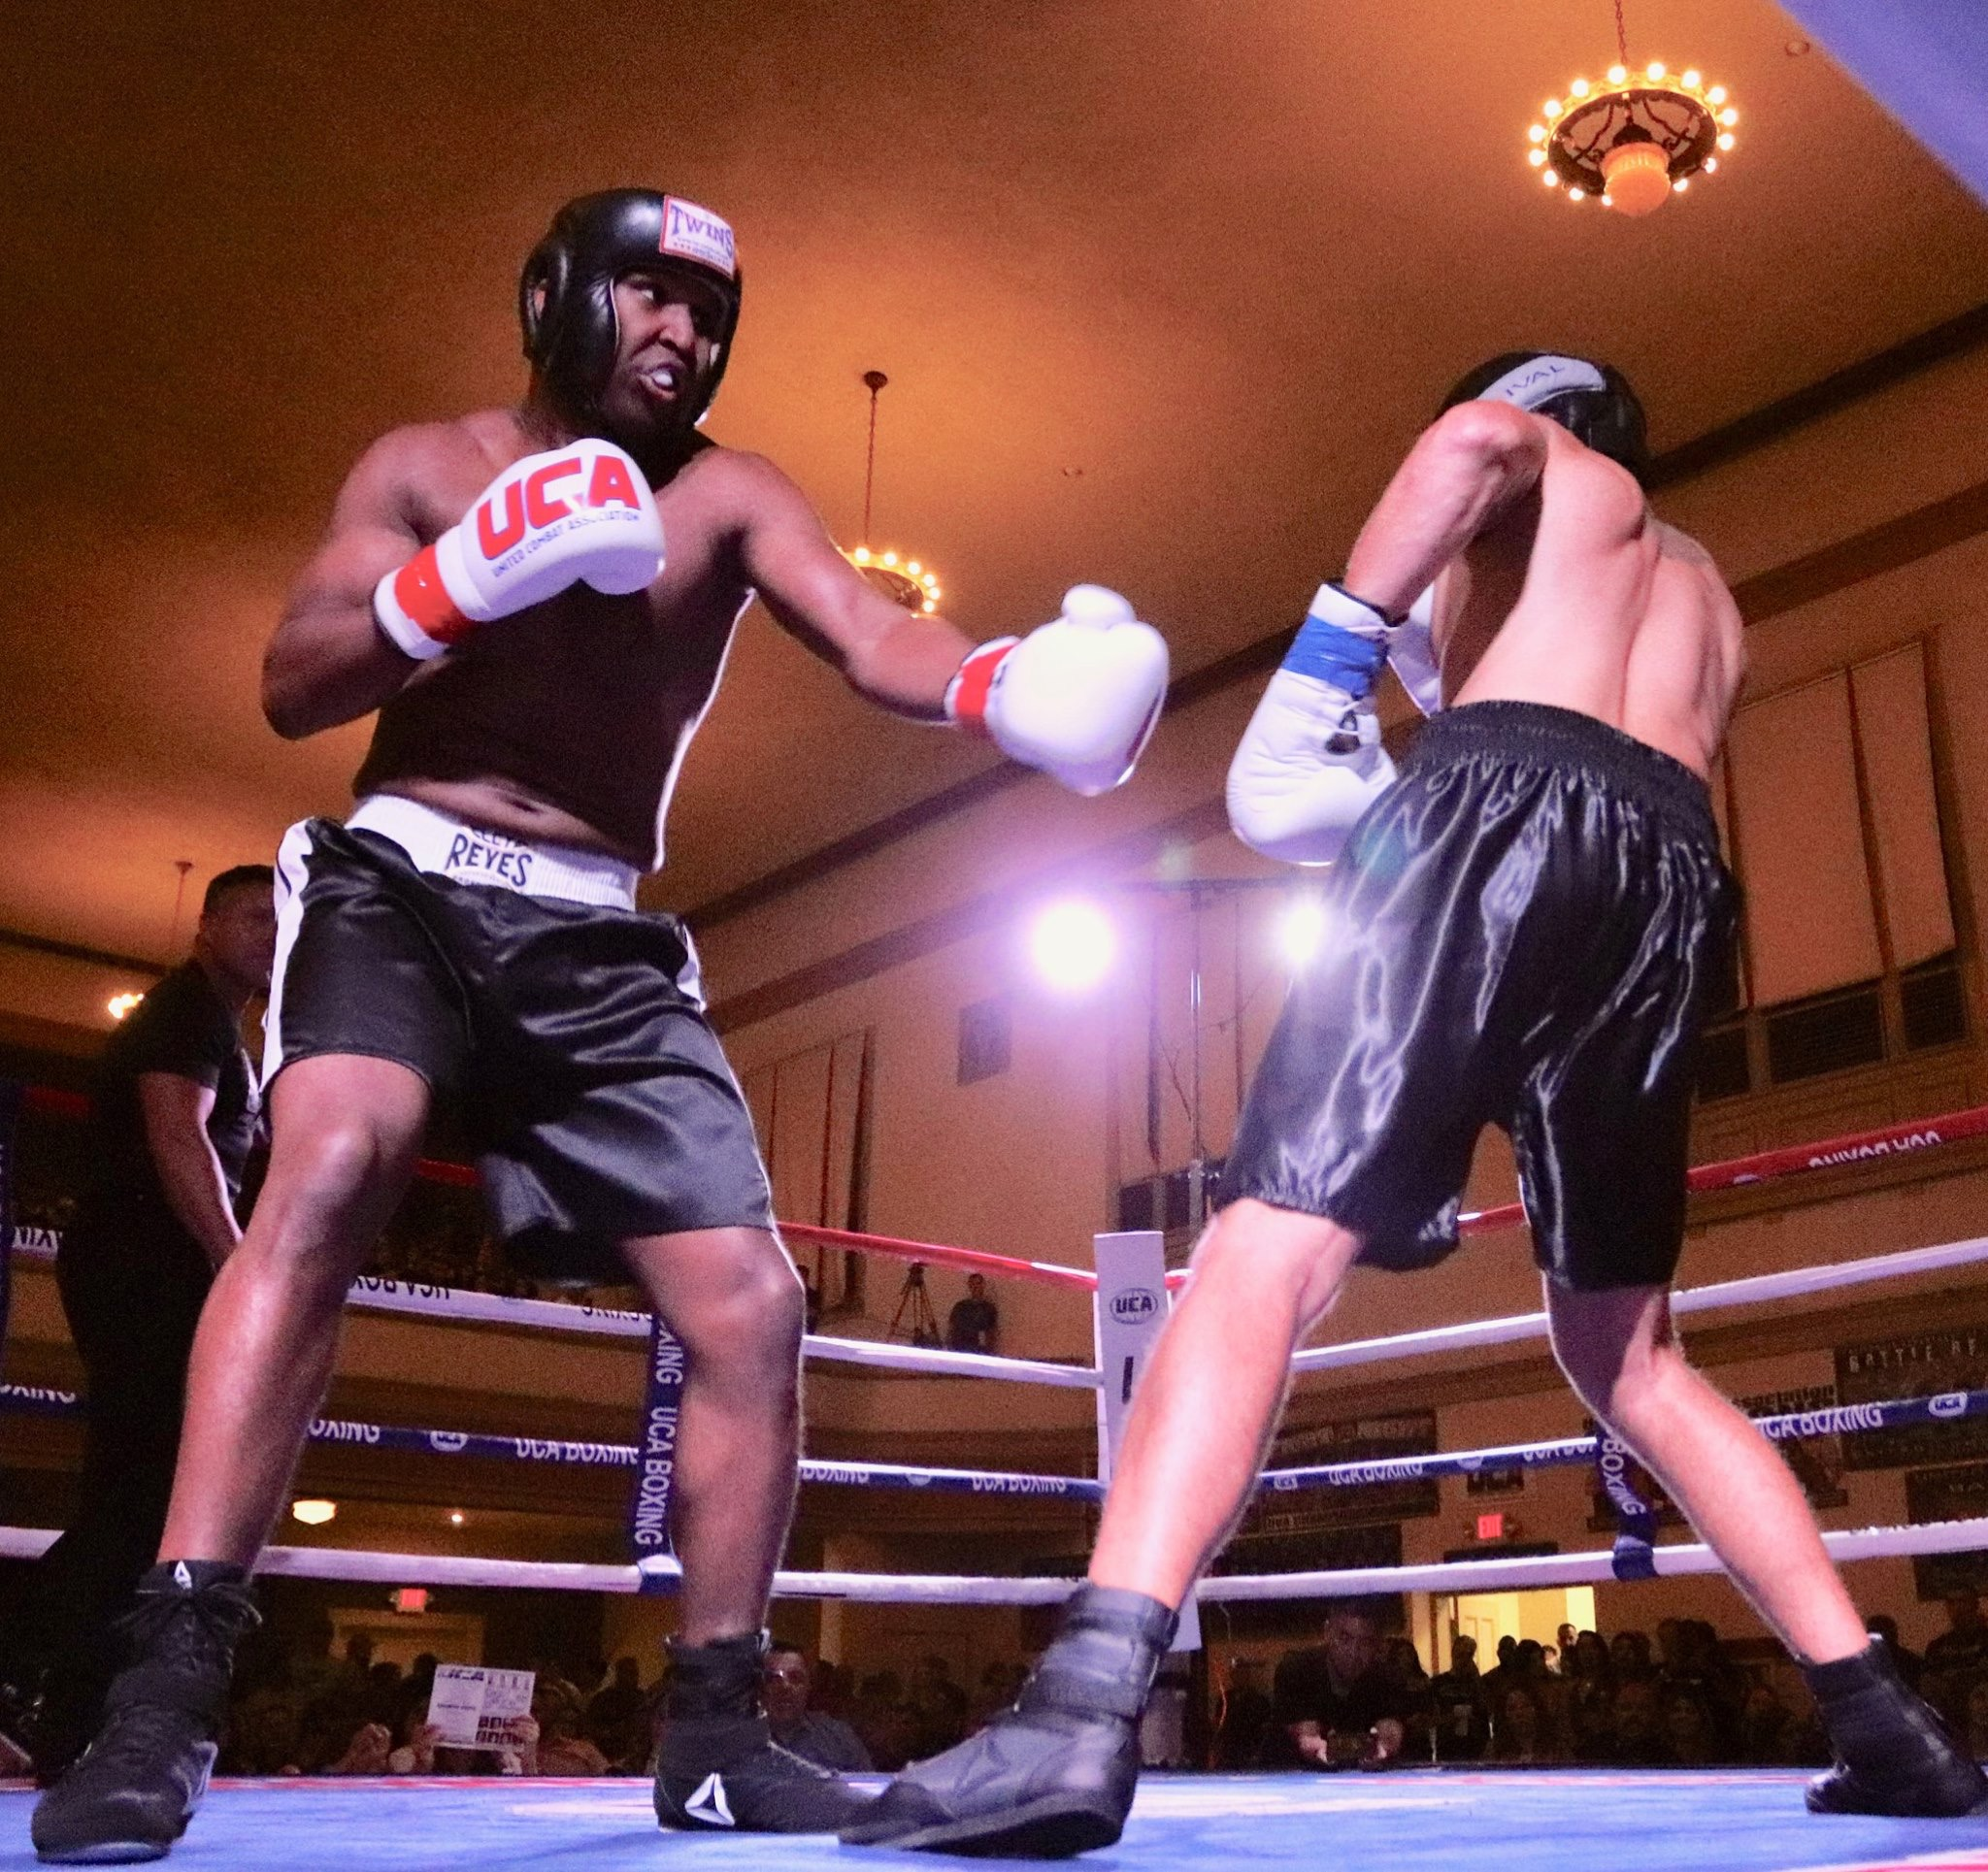 UCA Super Cruiserweight Champion  Marqus Blevins  in action opposite UCA Super Heavyweight Champion Chris Dubianksy